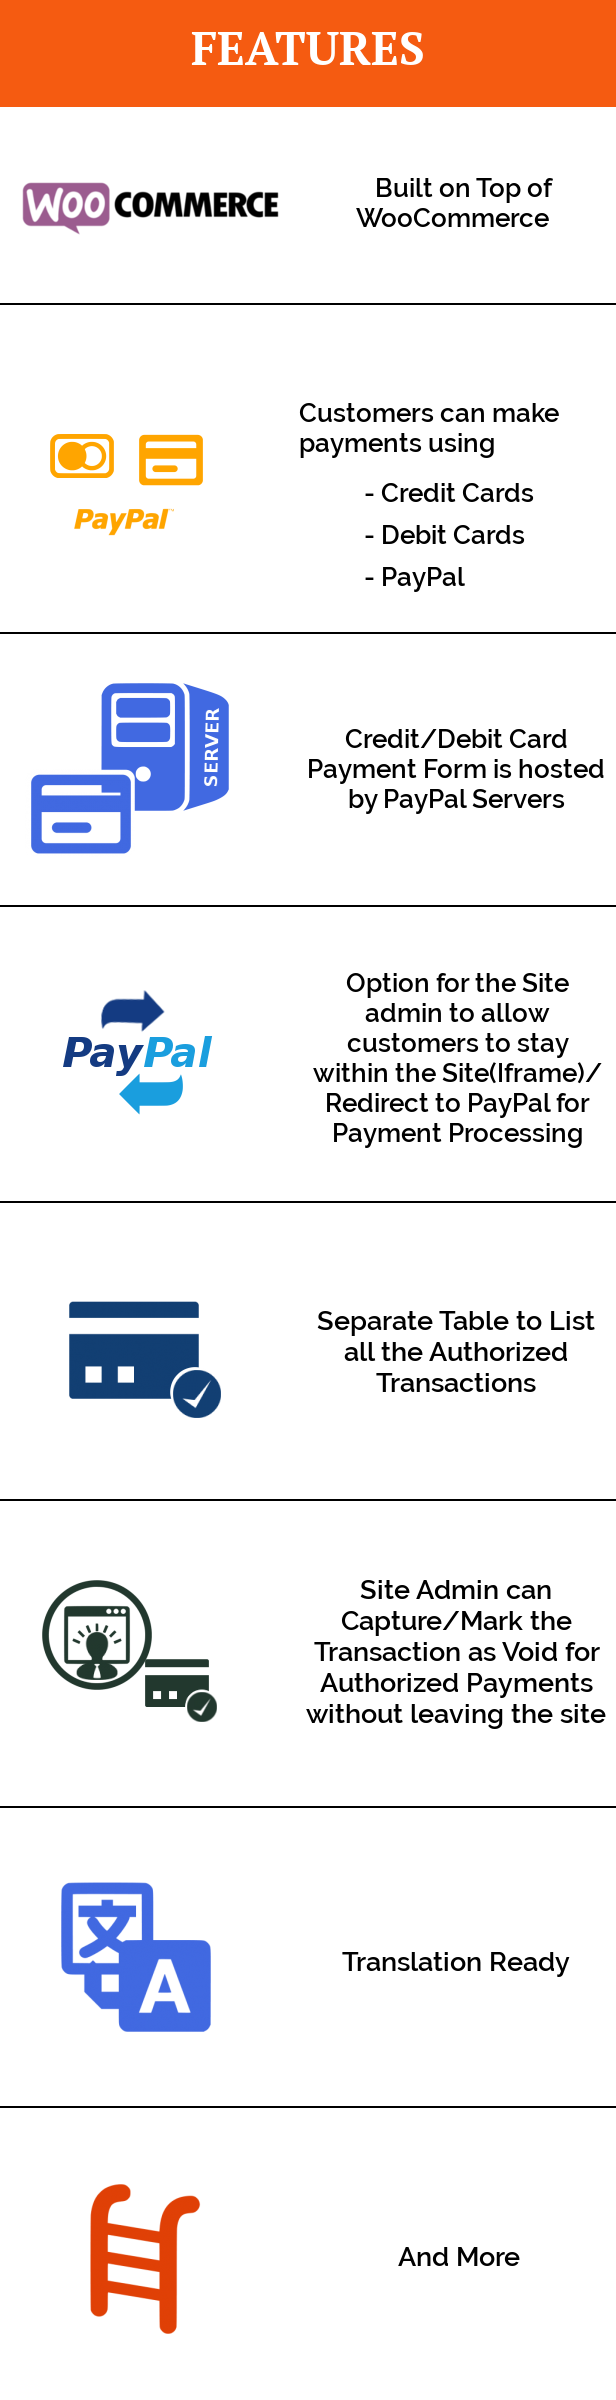 woocommerce-paypal-pro-hosted-features-infographics